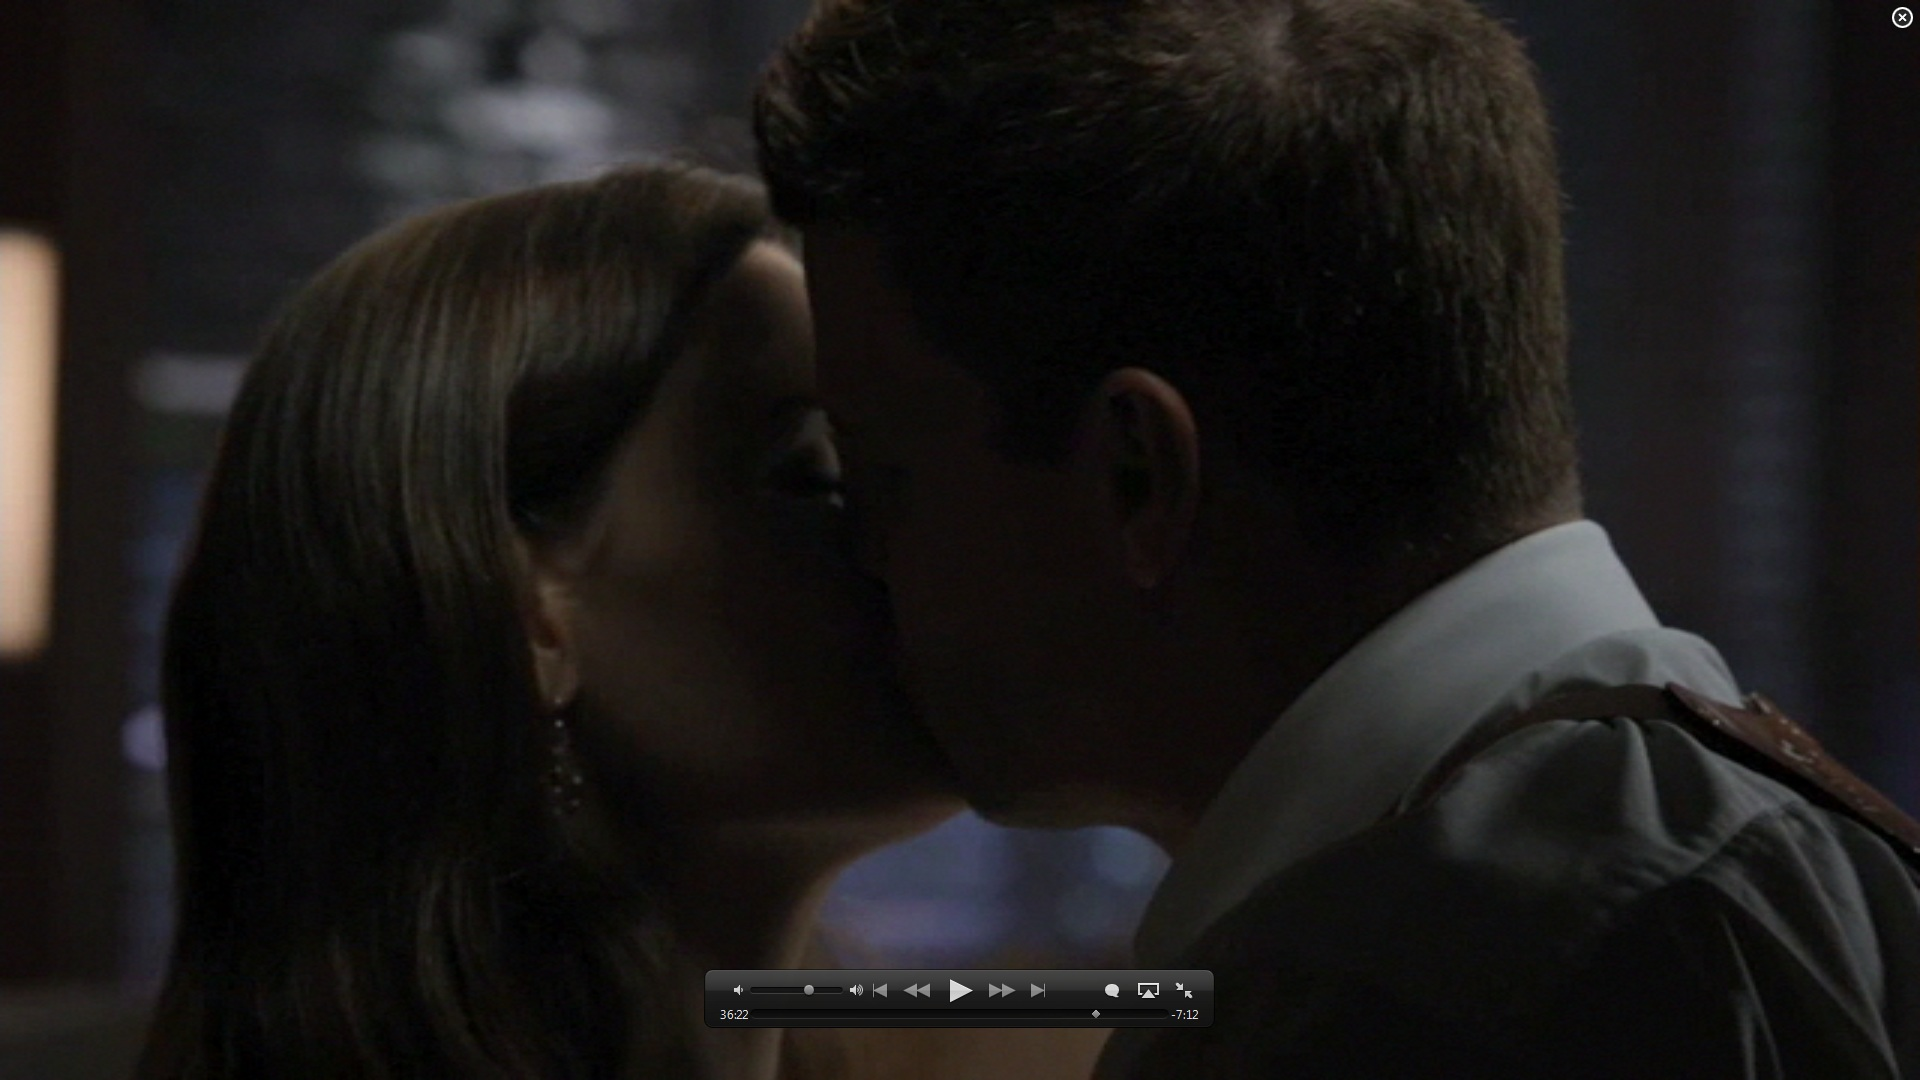 7x01 kiss booth and bones image 26582089 fanpop